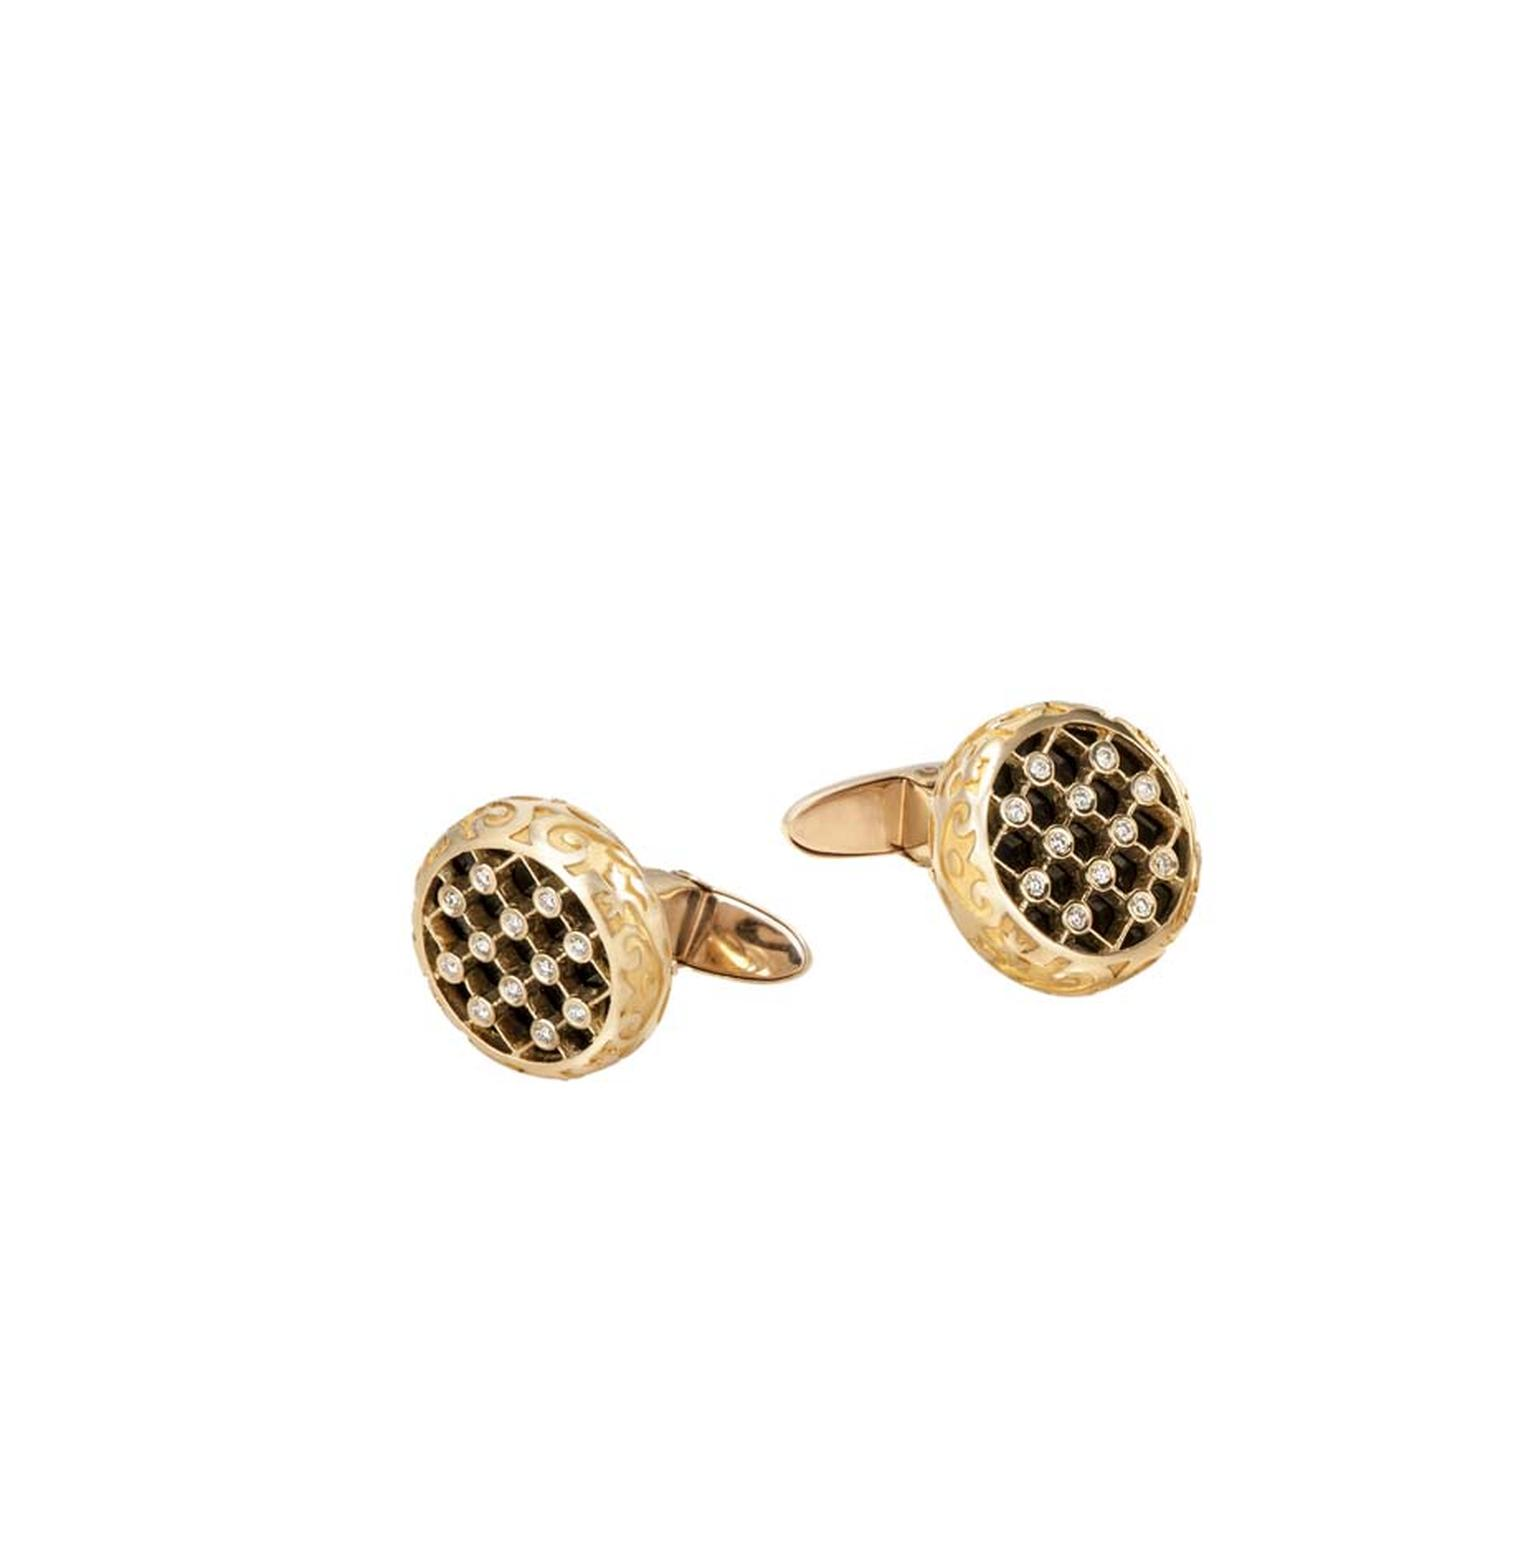 Carrera y Carrera Sierpes cufflinks in yellow gold and diamonds.